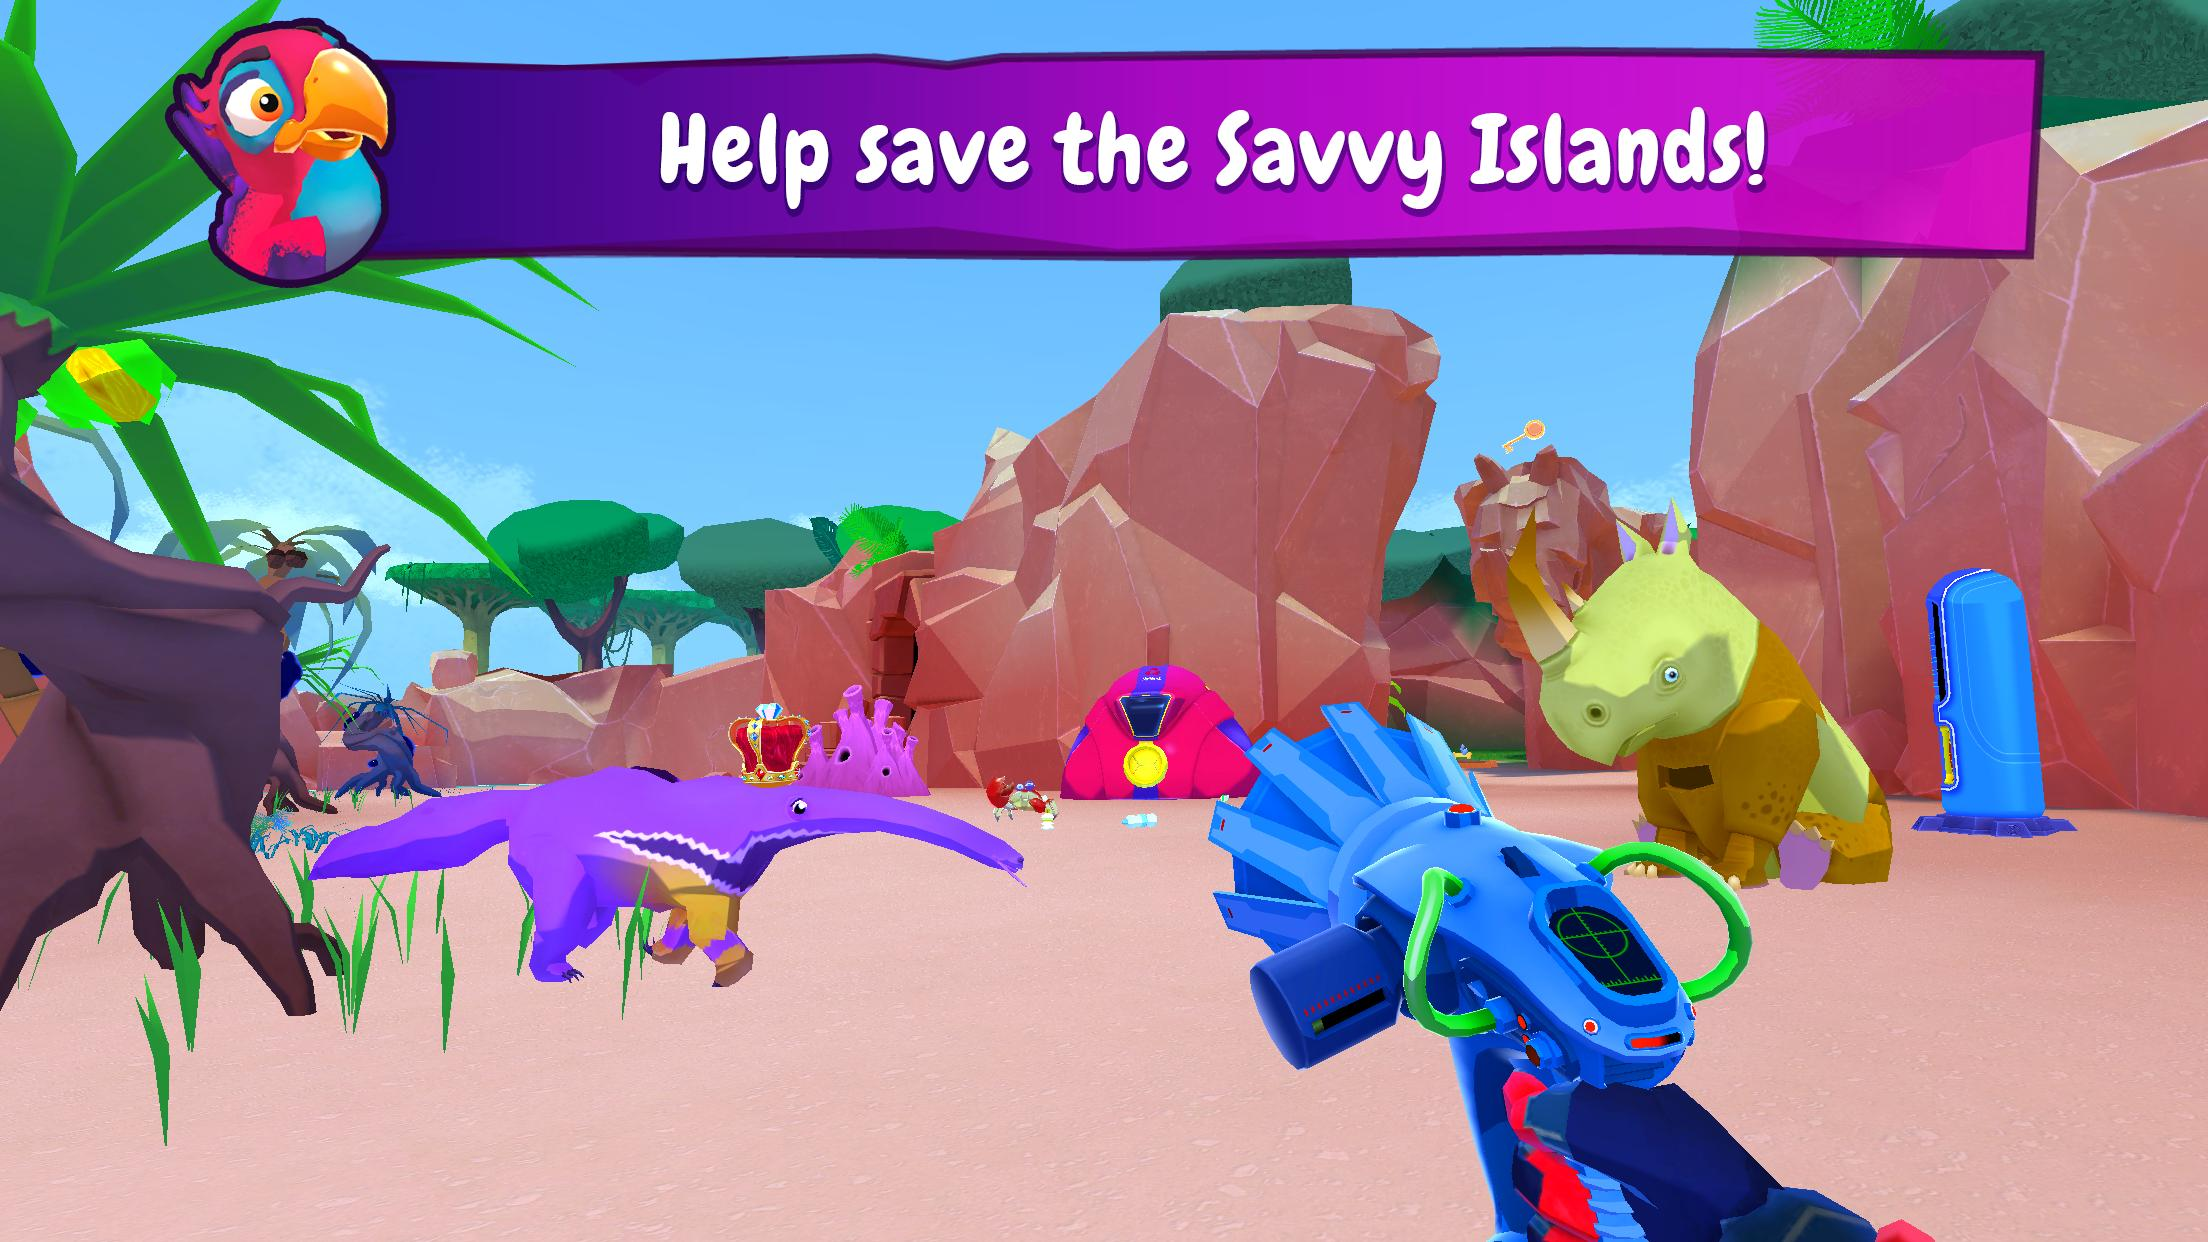 Island Saver for Android - APK Download